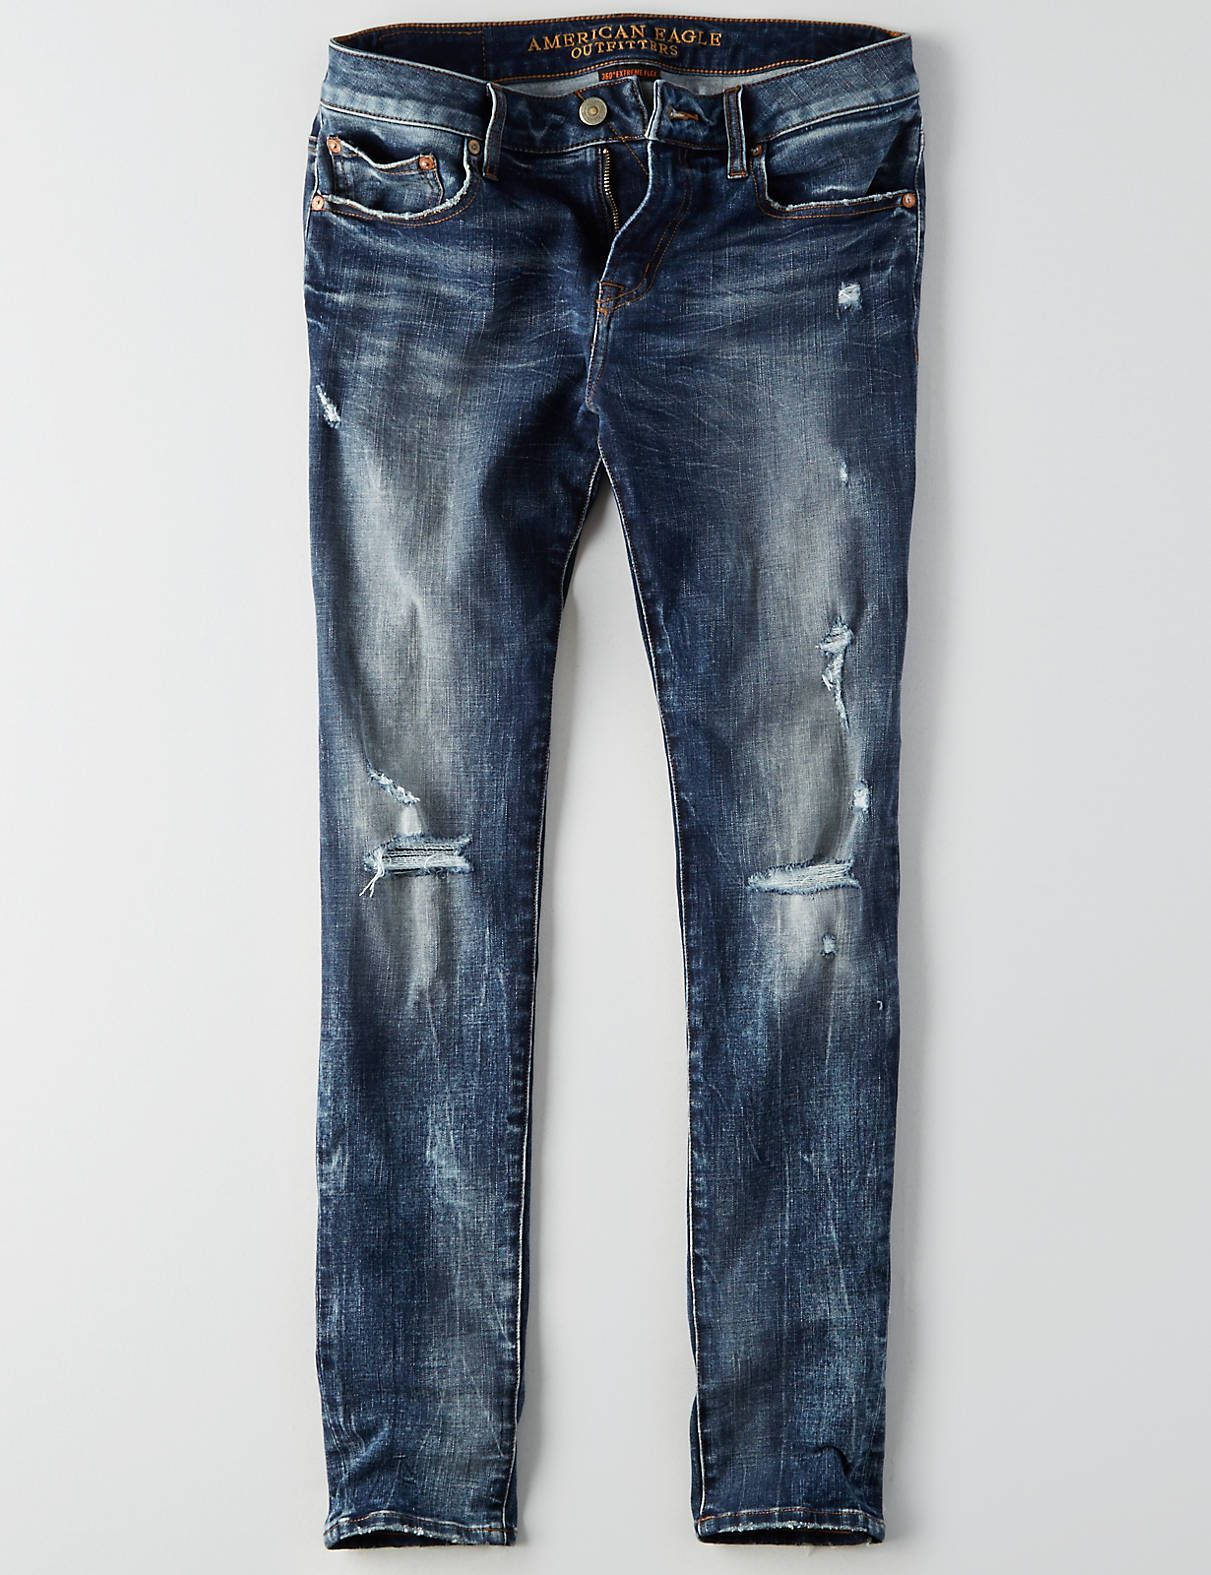 american eagle stretch jeans mens